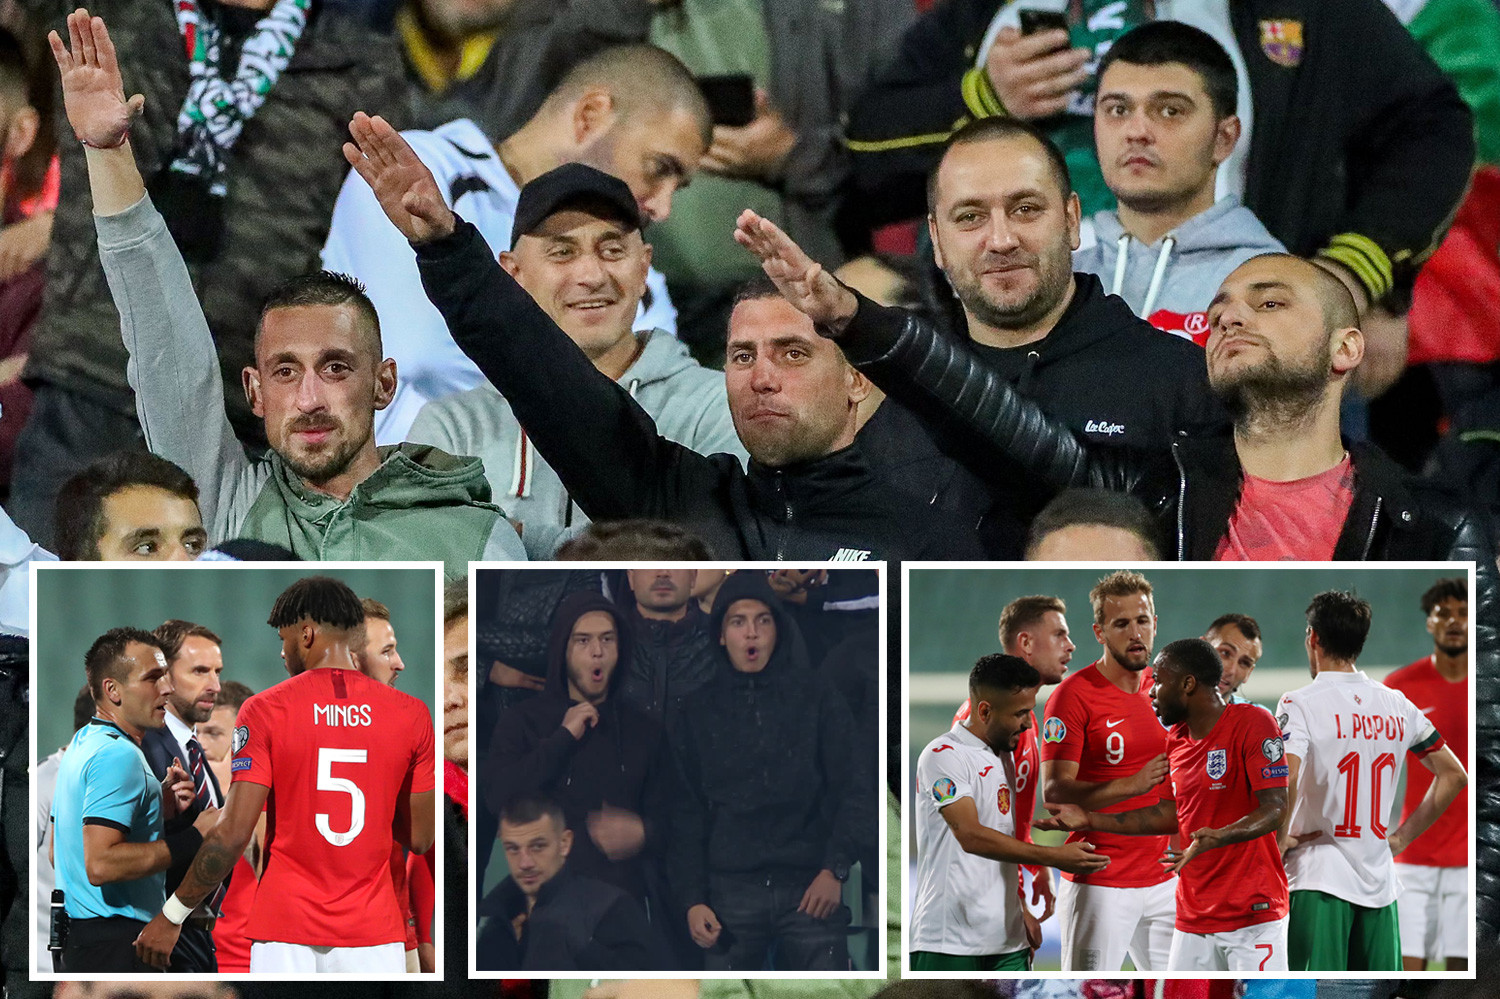 Raheem Sterling and Tyrone Mings were subjected to sick racist abuse in Bulgaria - with fans doing monkey noises and Nazi salutes